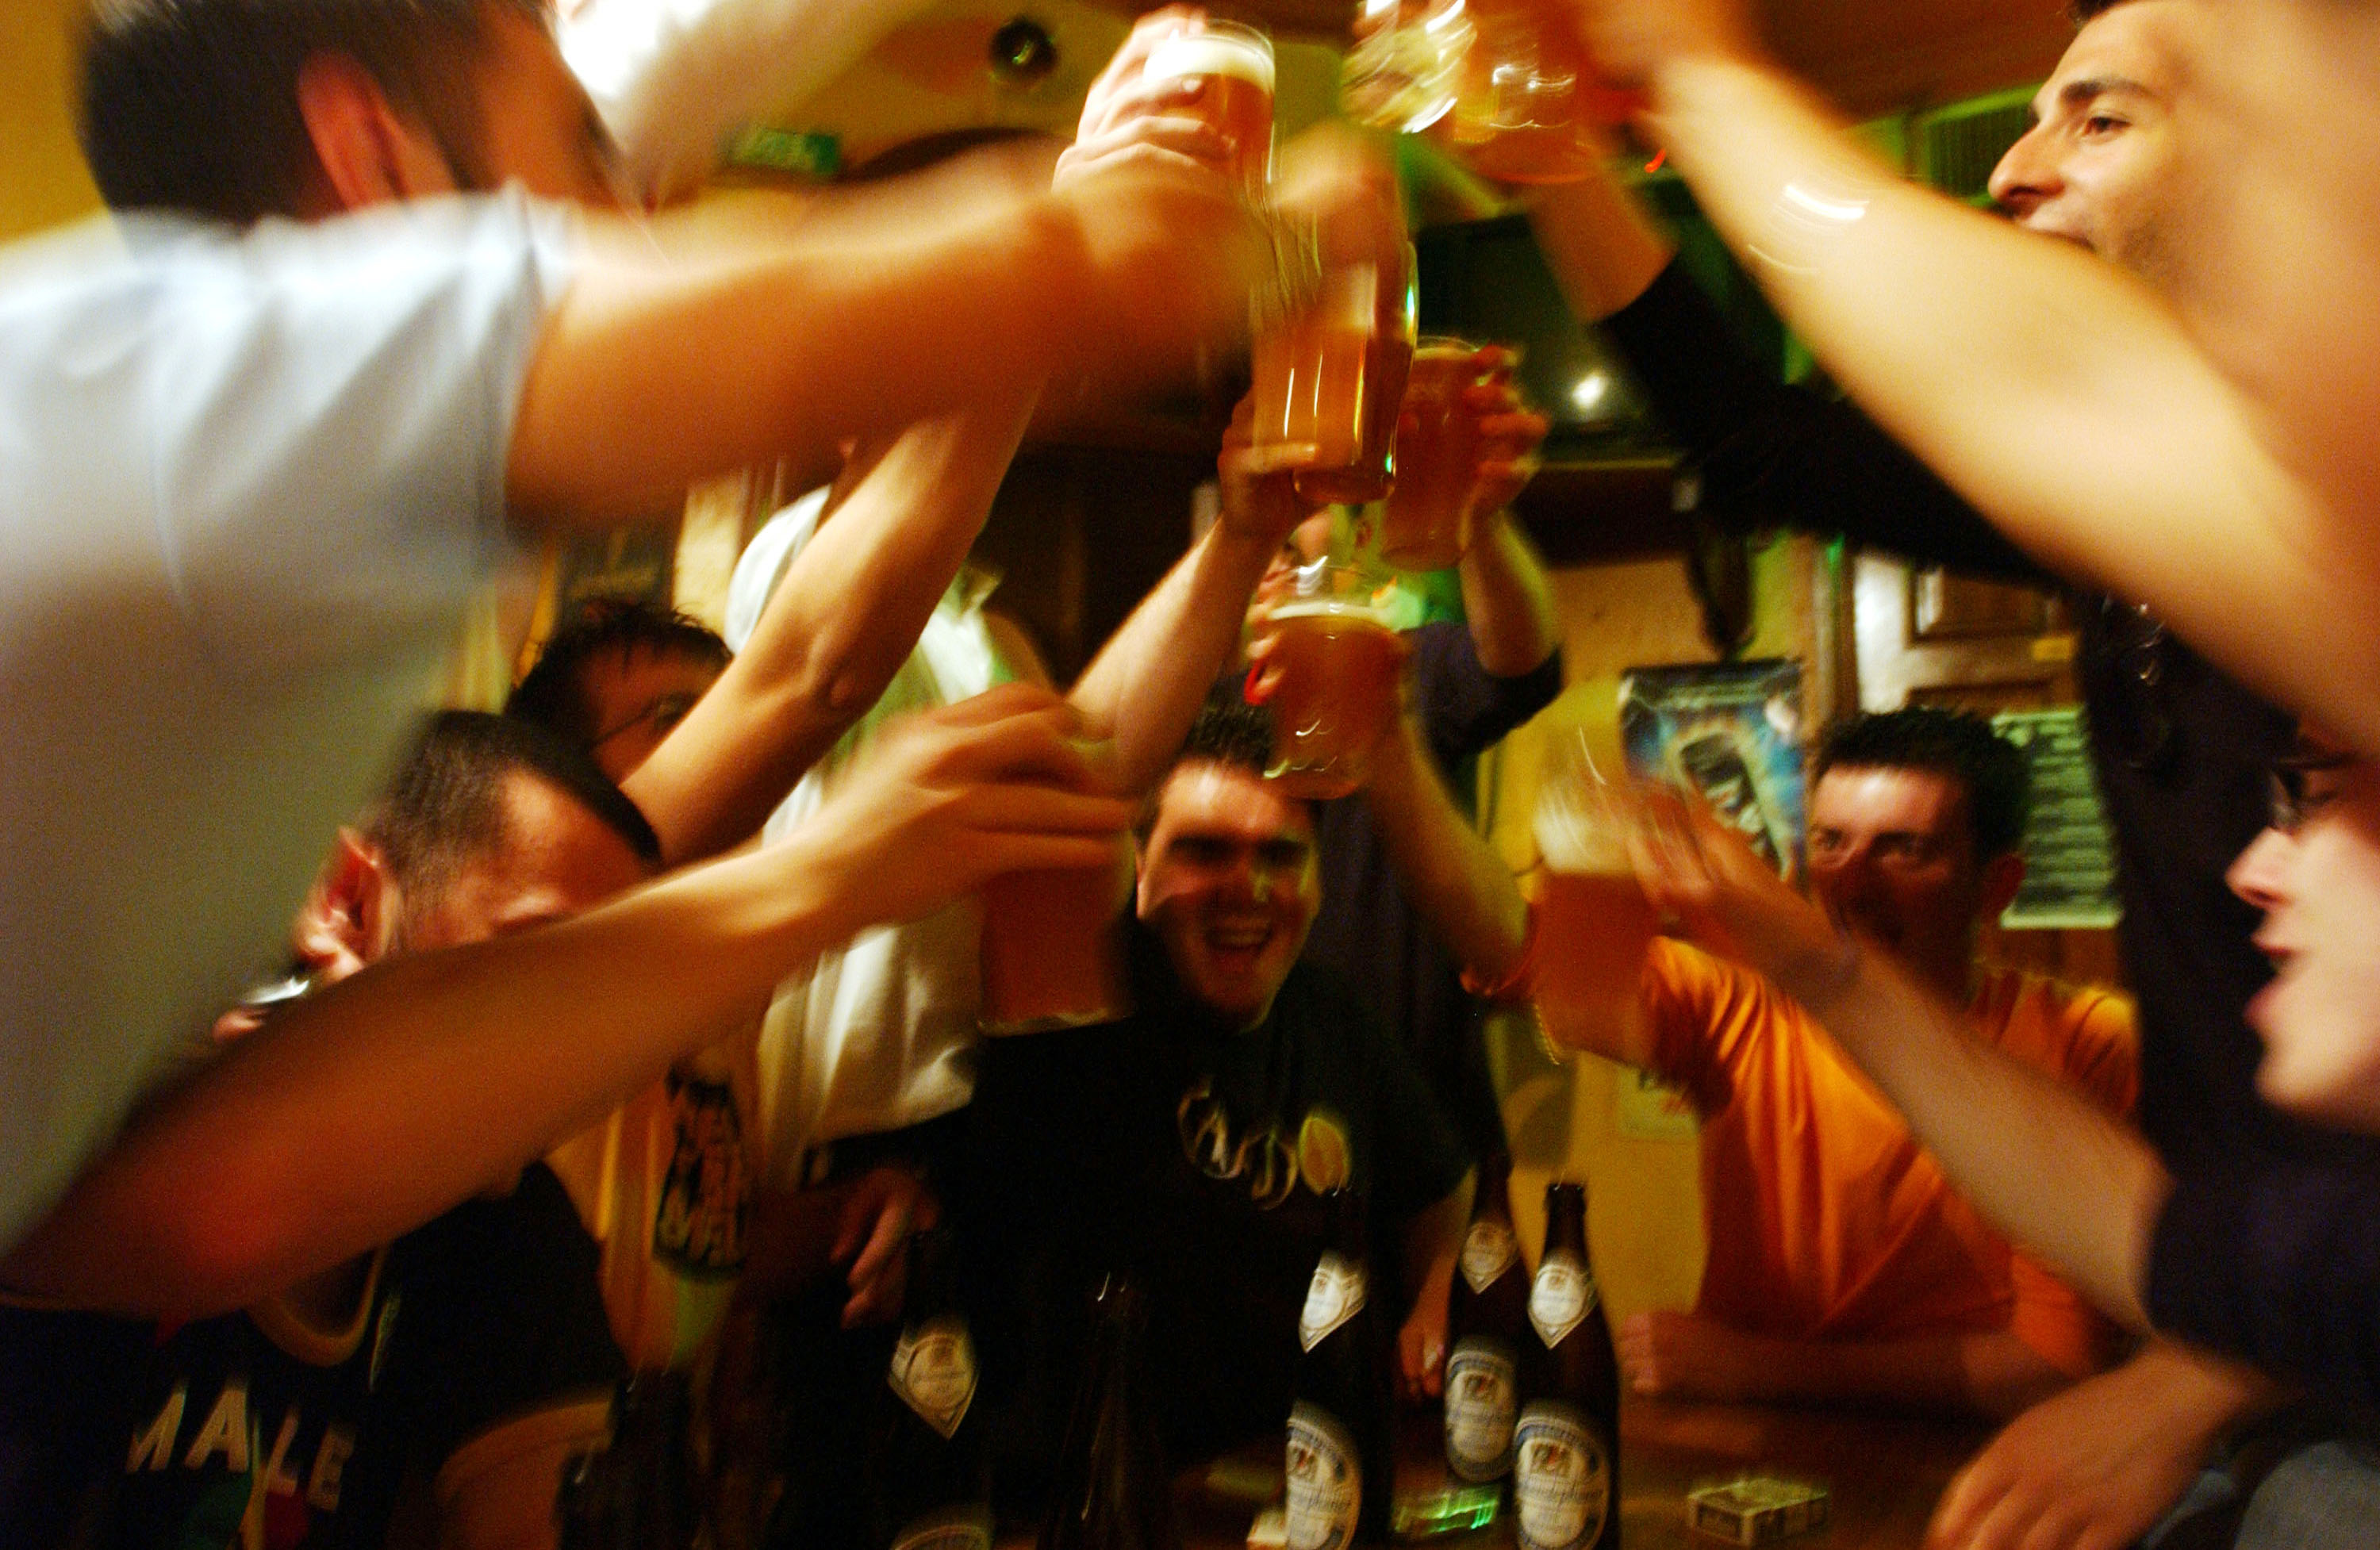 Italian students from the Primo Levi Technical Institute of Vignola in the Modena Province, toast with glasses of beer in a pub during a school trip to Strasbourg, France to visit the European Parliament on May 18, 2004 (Getty Images)